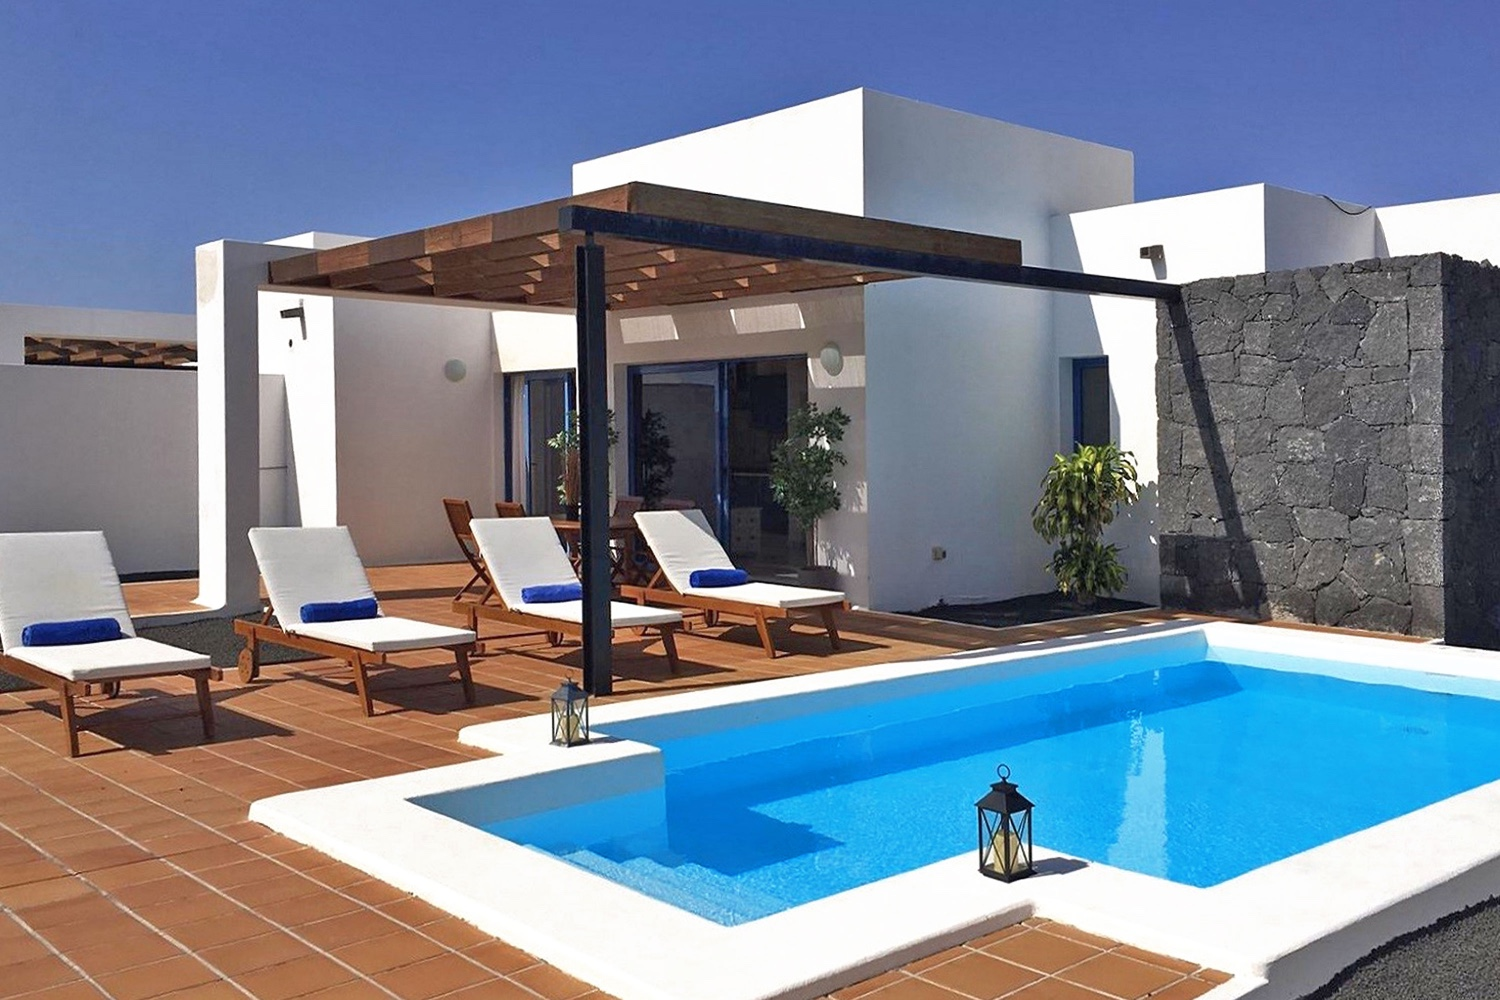 2 bedroom villa with excellent views at the foot of a volcano, with private pool, 2 terraces, air conditioning and WIFI